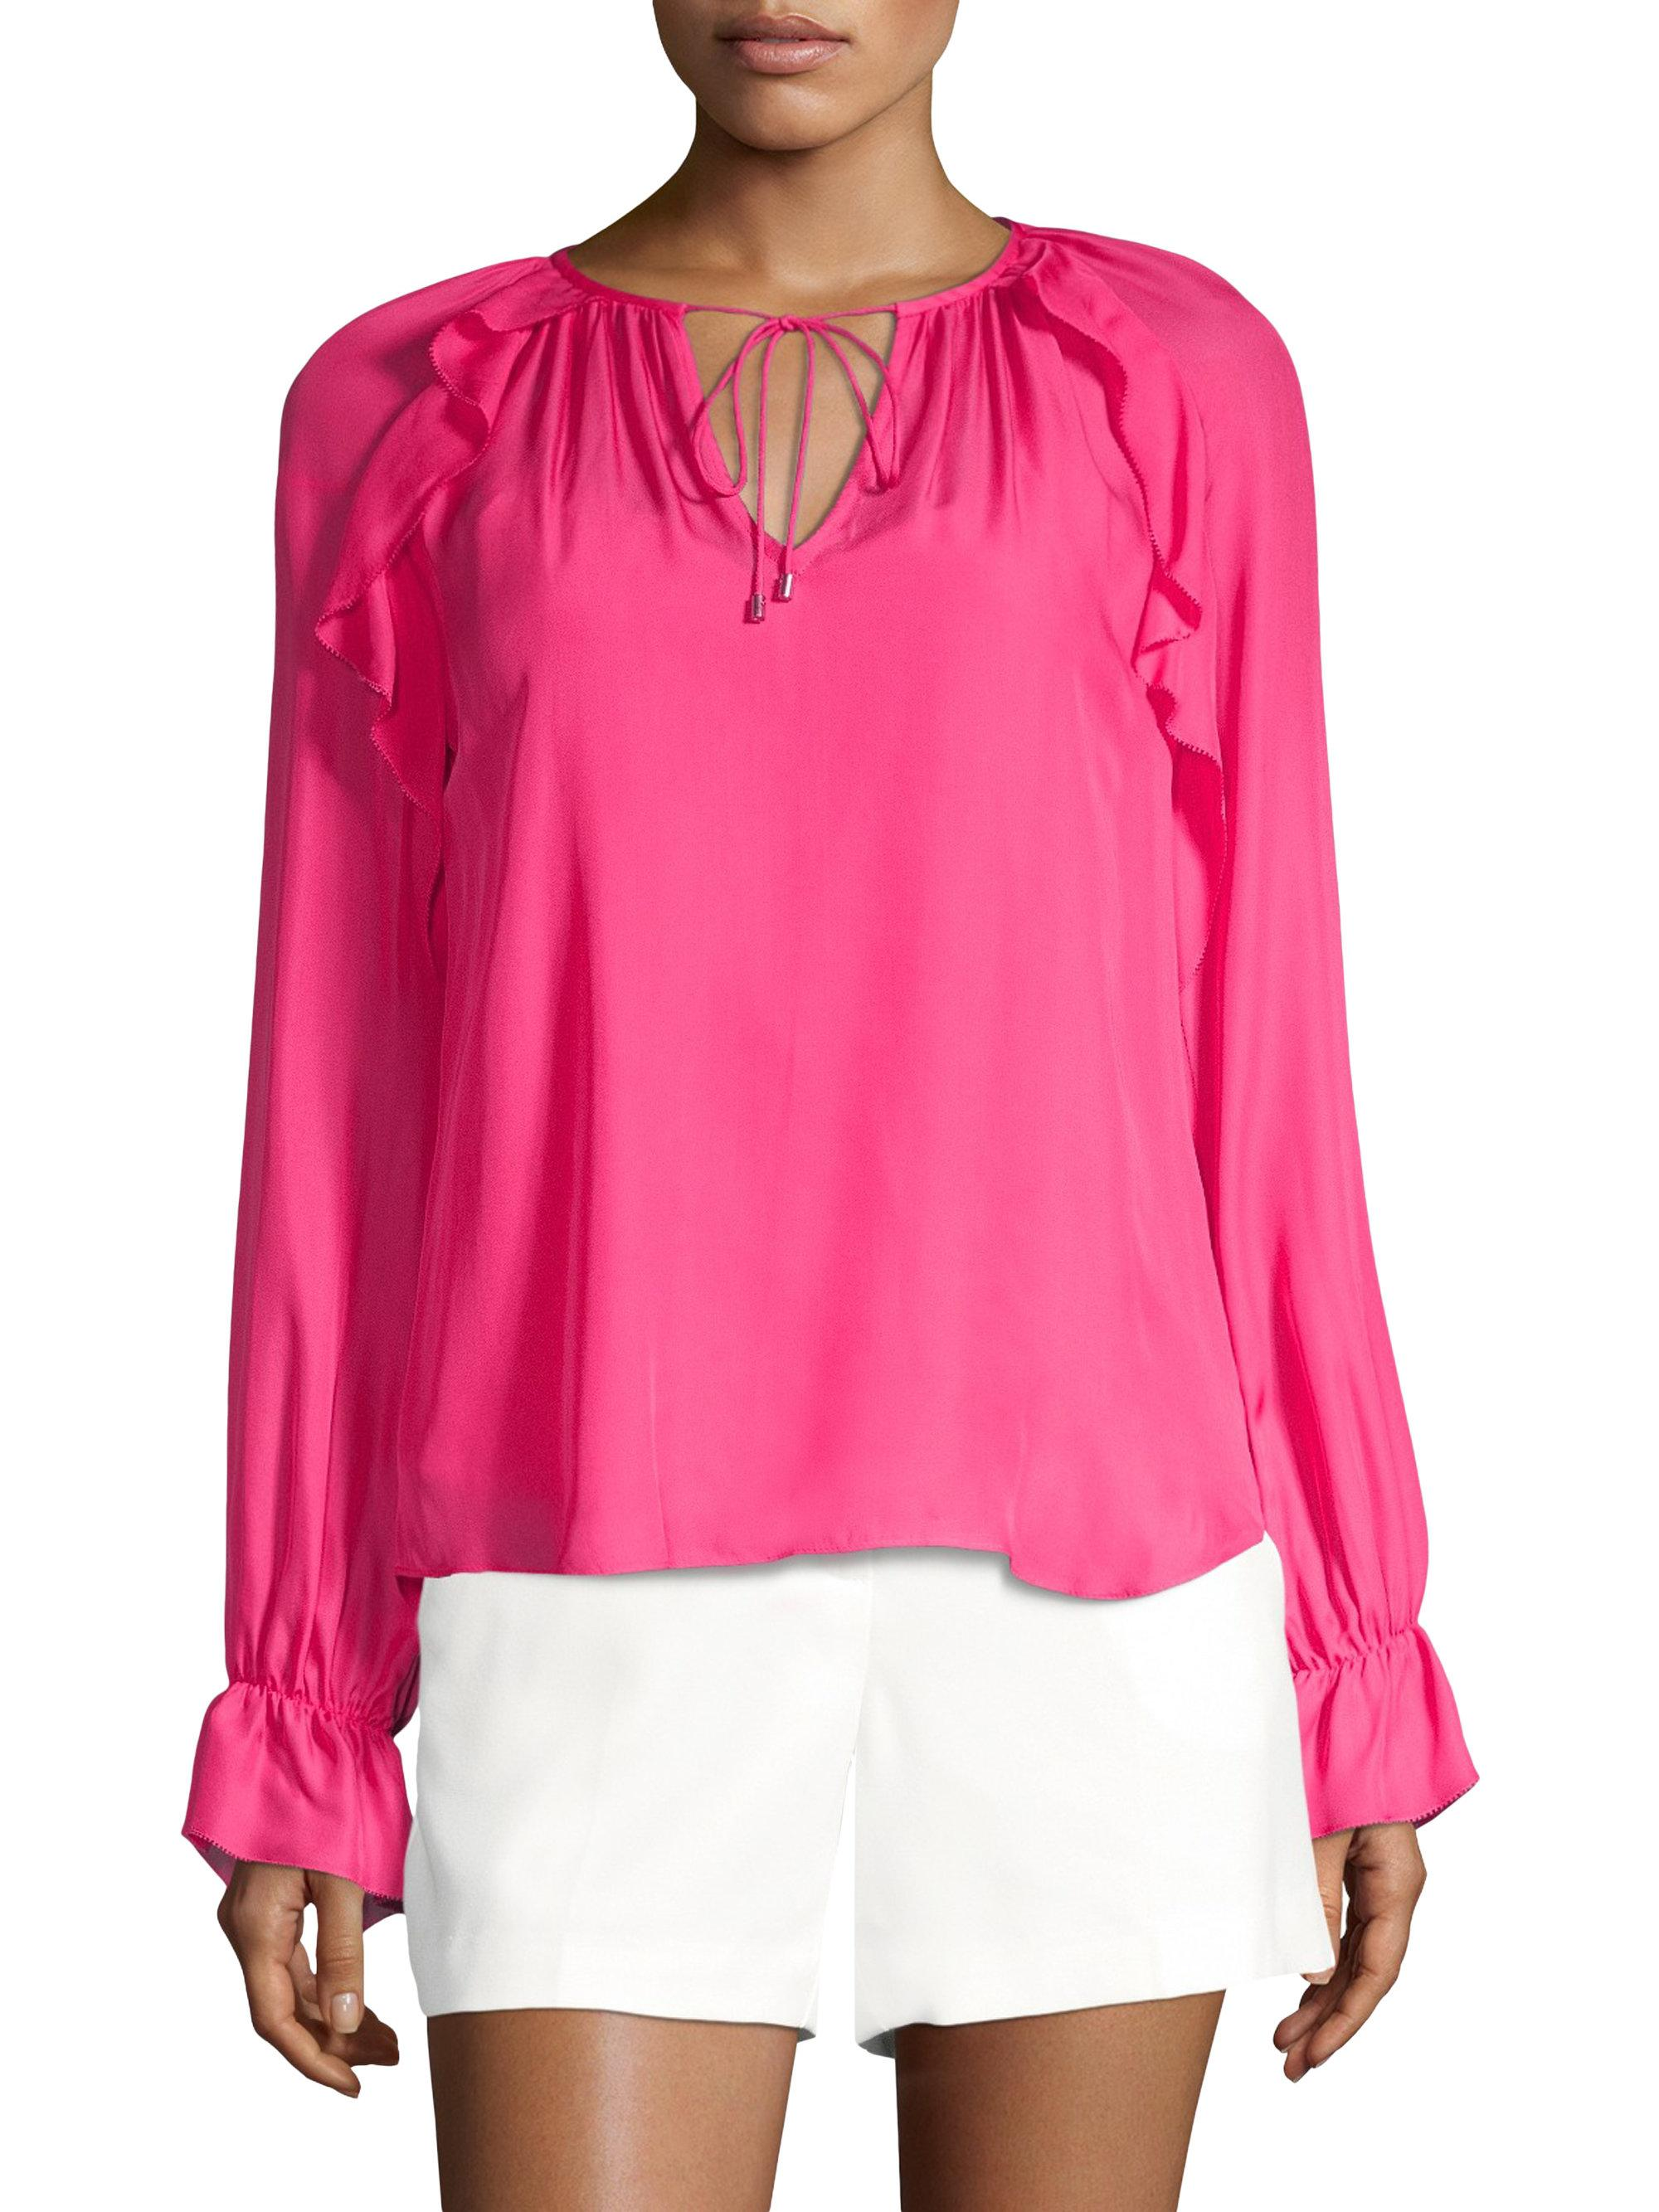 560dce504fb4bb Lyst - Trina Turk Magnolia Lace-up Silk Blouse in Pink